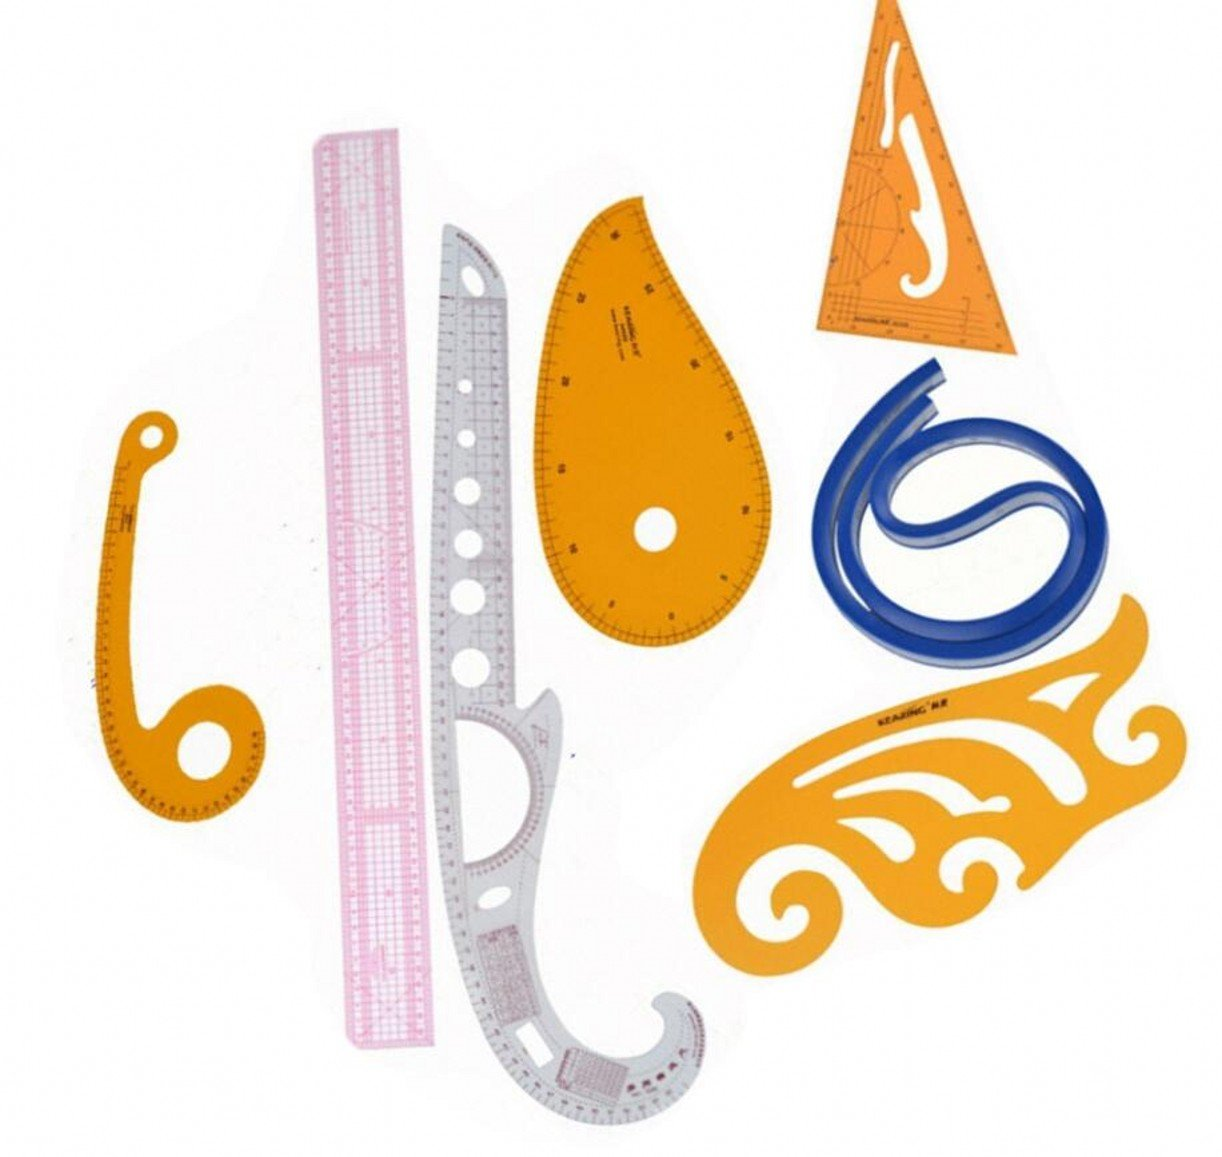 CHENGYIDA Practical 7 Styling Ruler French Curve Set French Curve, Multi-purpose Rolling Ruler Set by CHENGYIDA